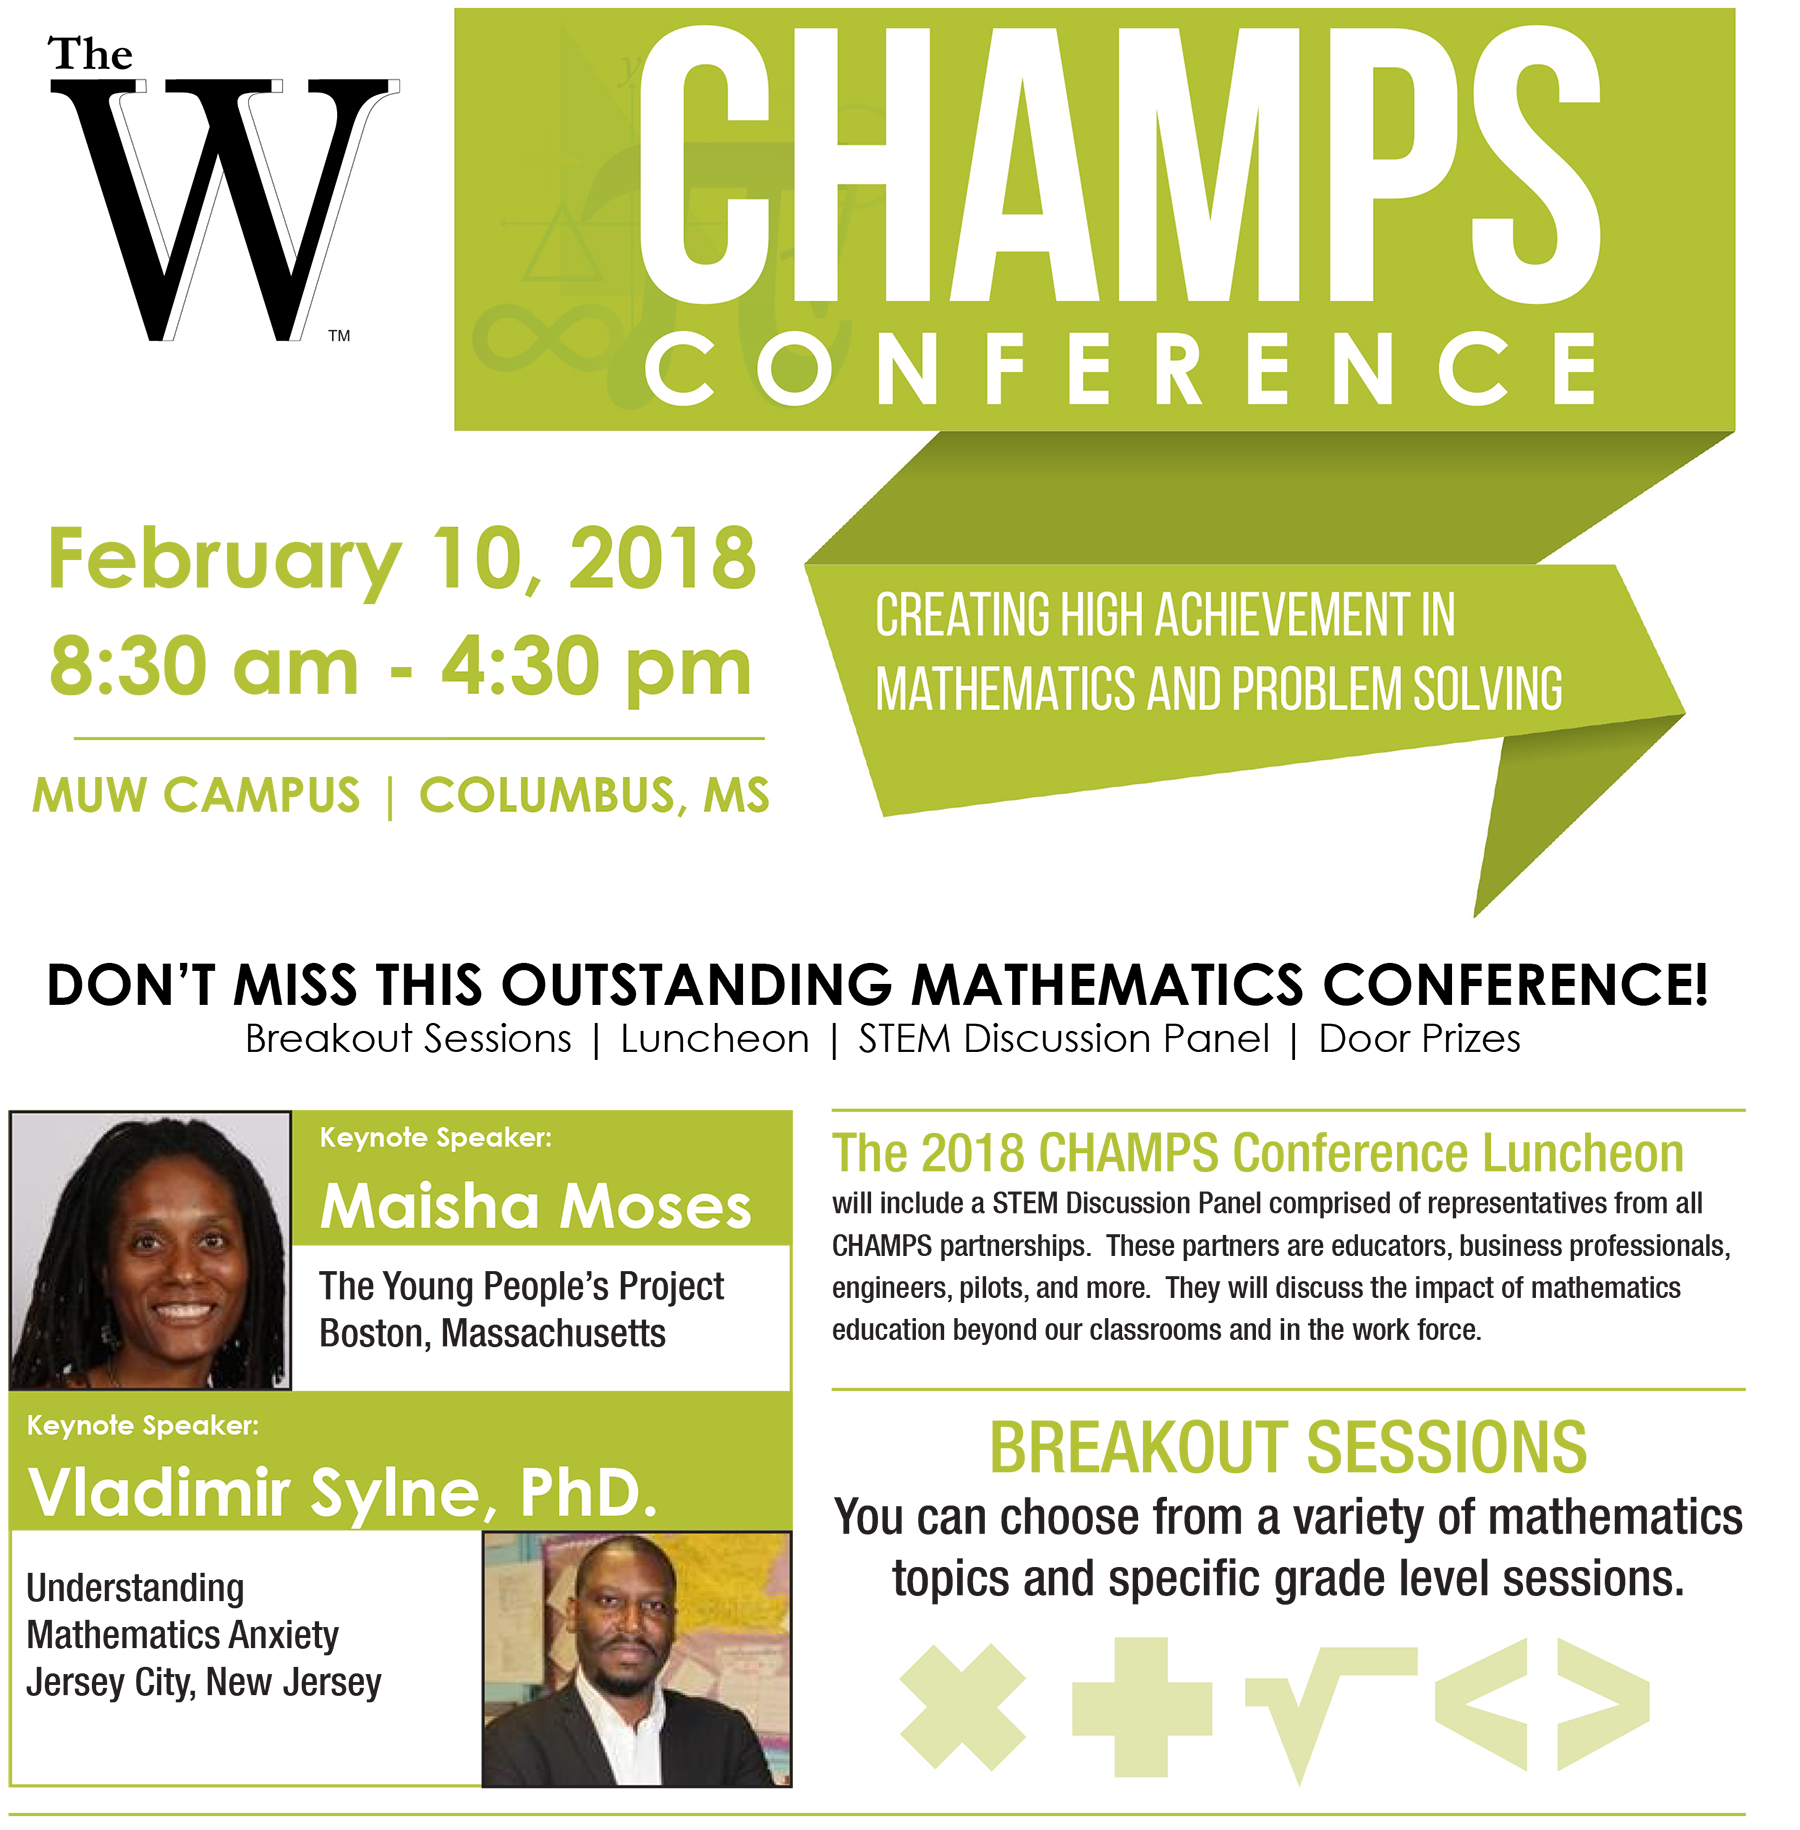 CHAMPS 2018 Conference